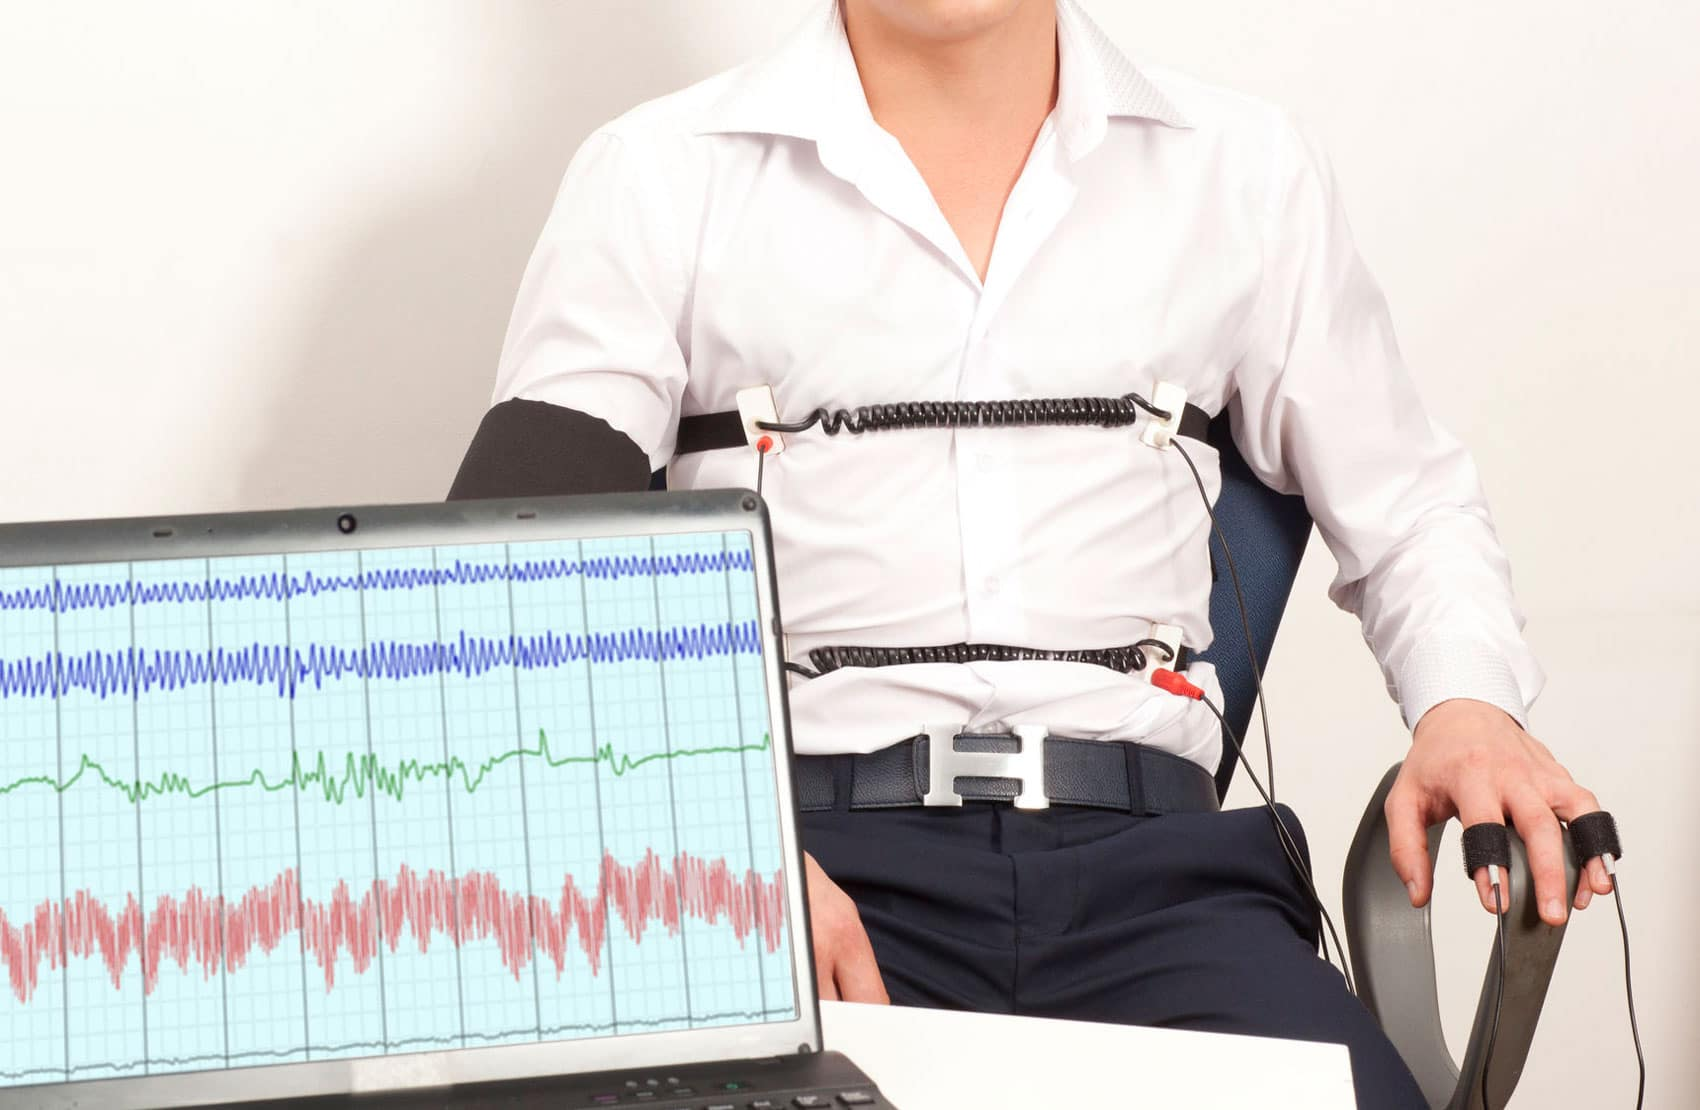 lie detector test uk polygraph